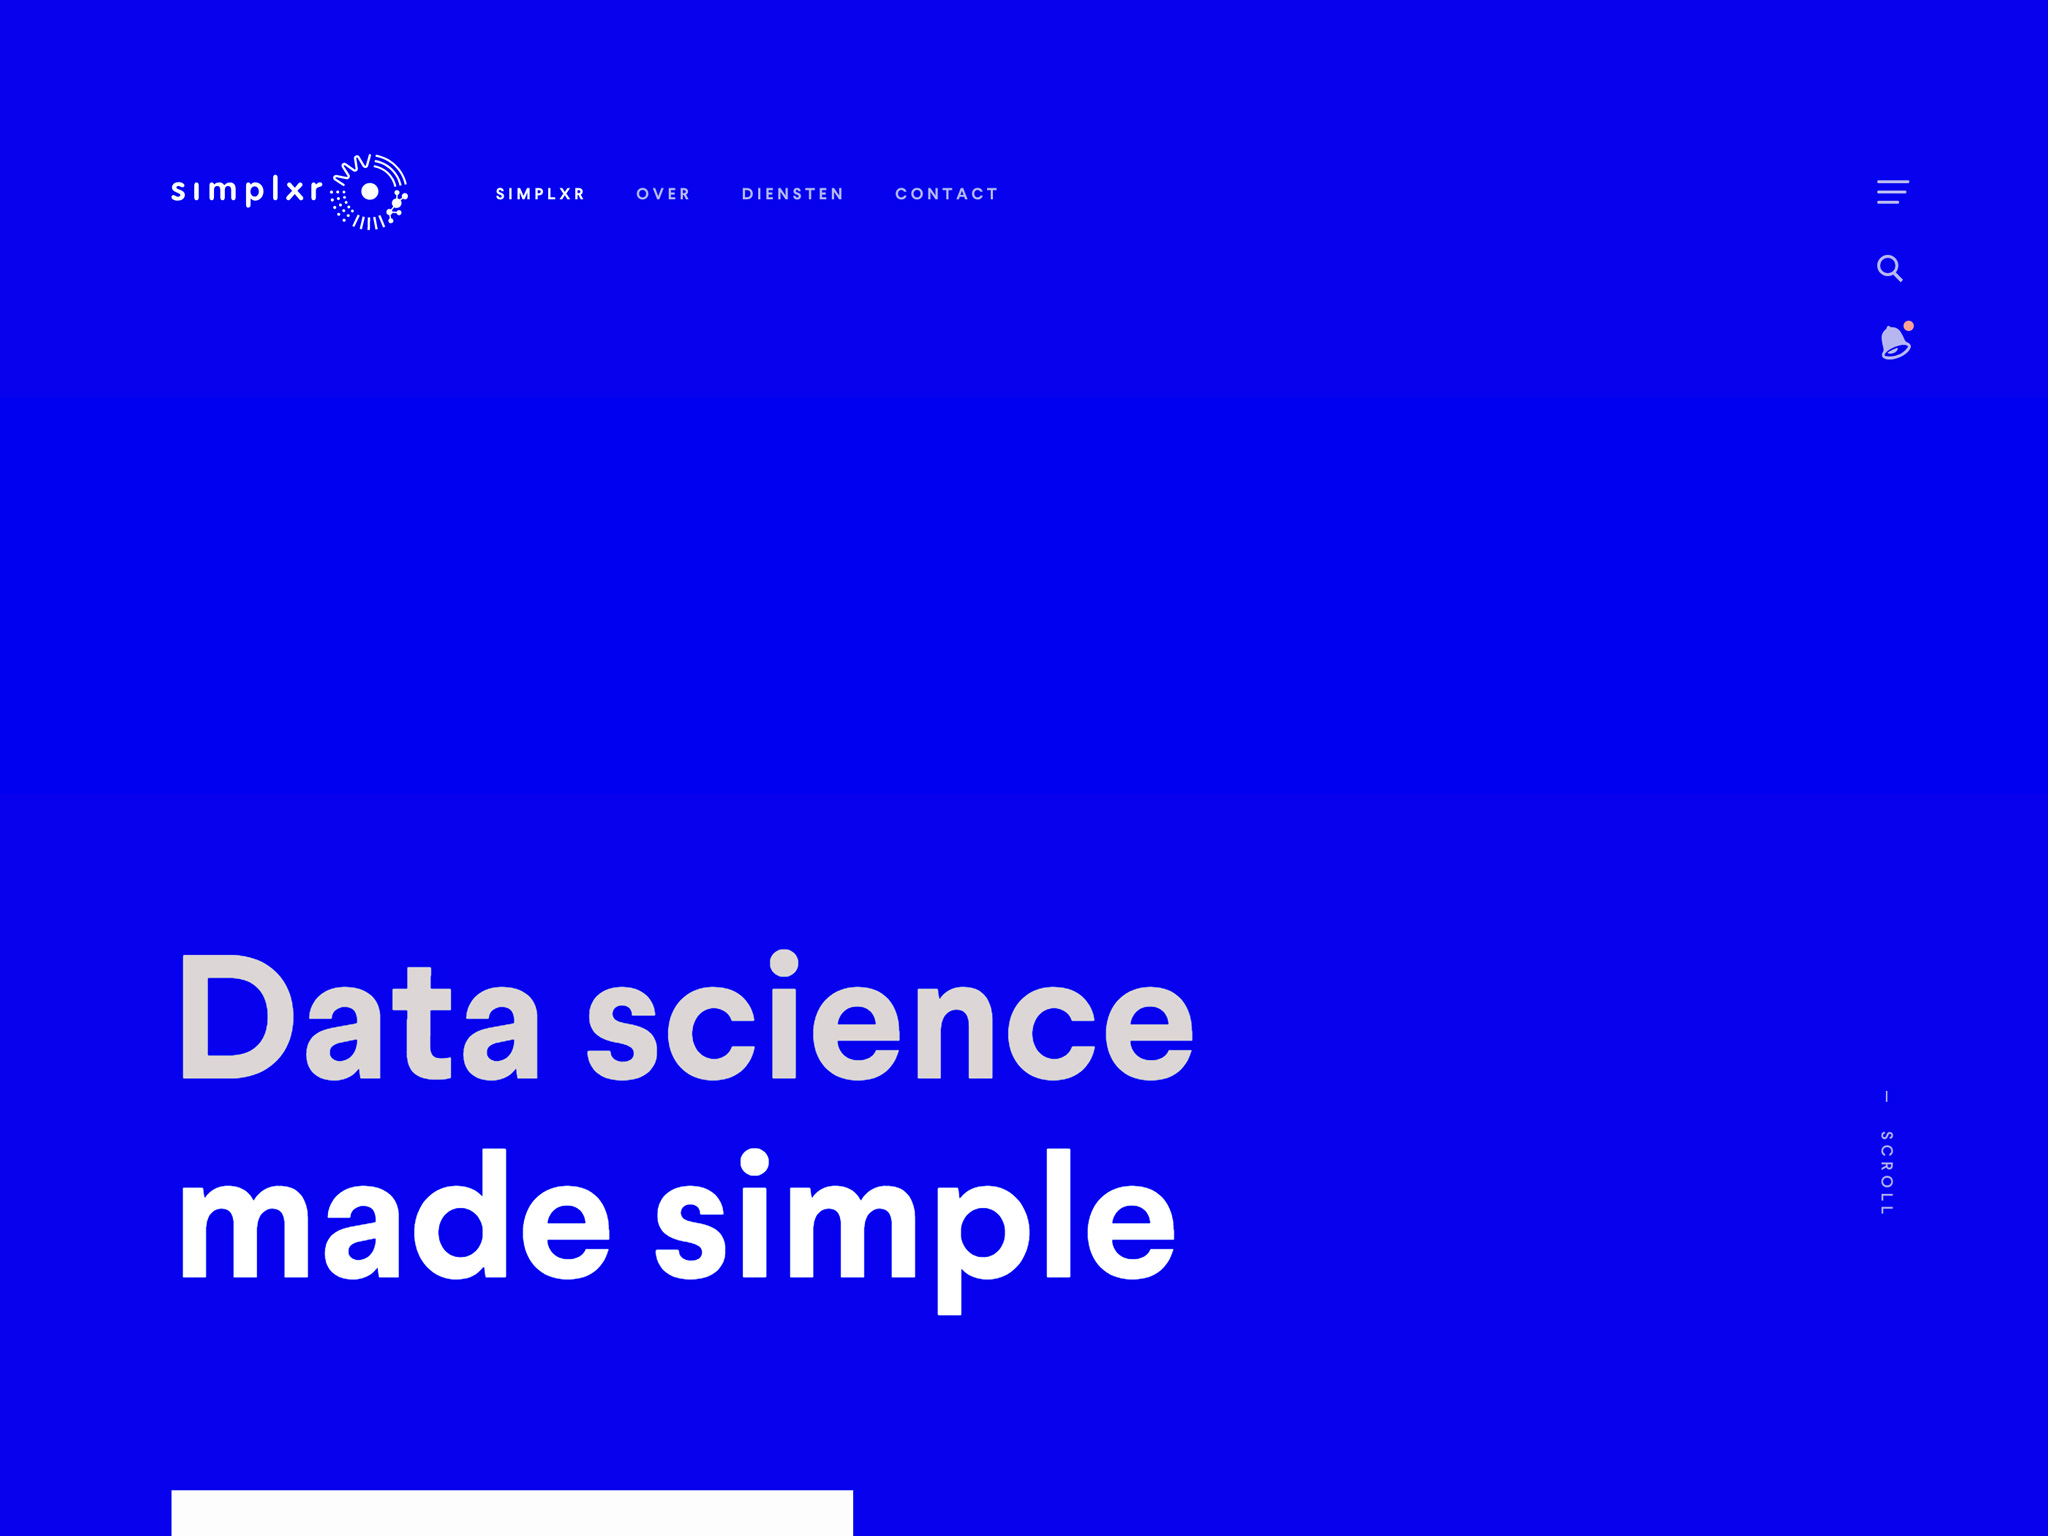 Data Science made simple · Simplxr